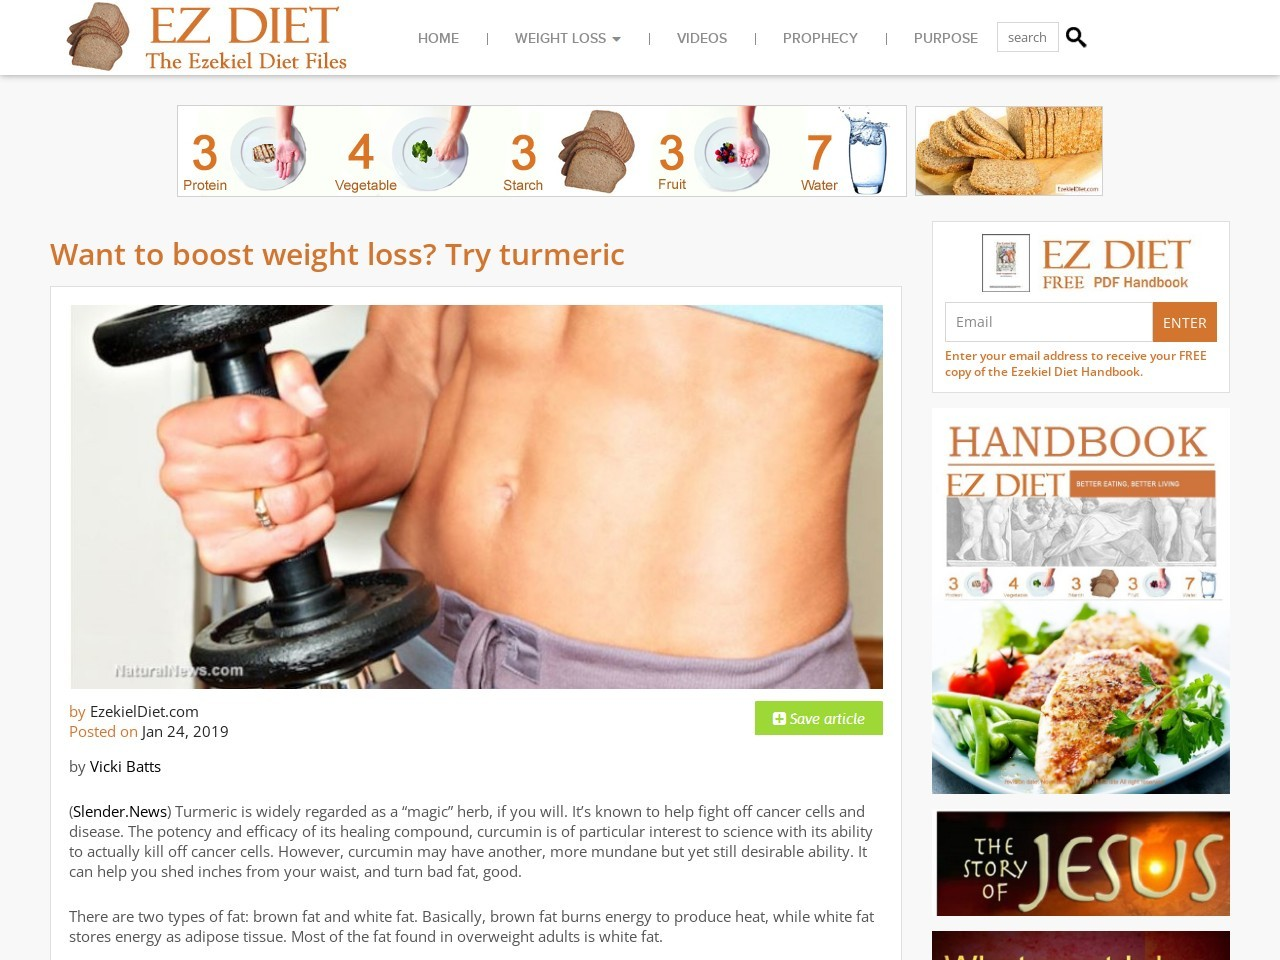 Want to boost weight loss? Try turmeric | The Ezekiel Diet Files